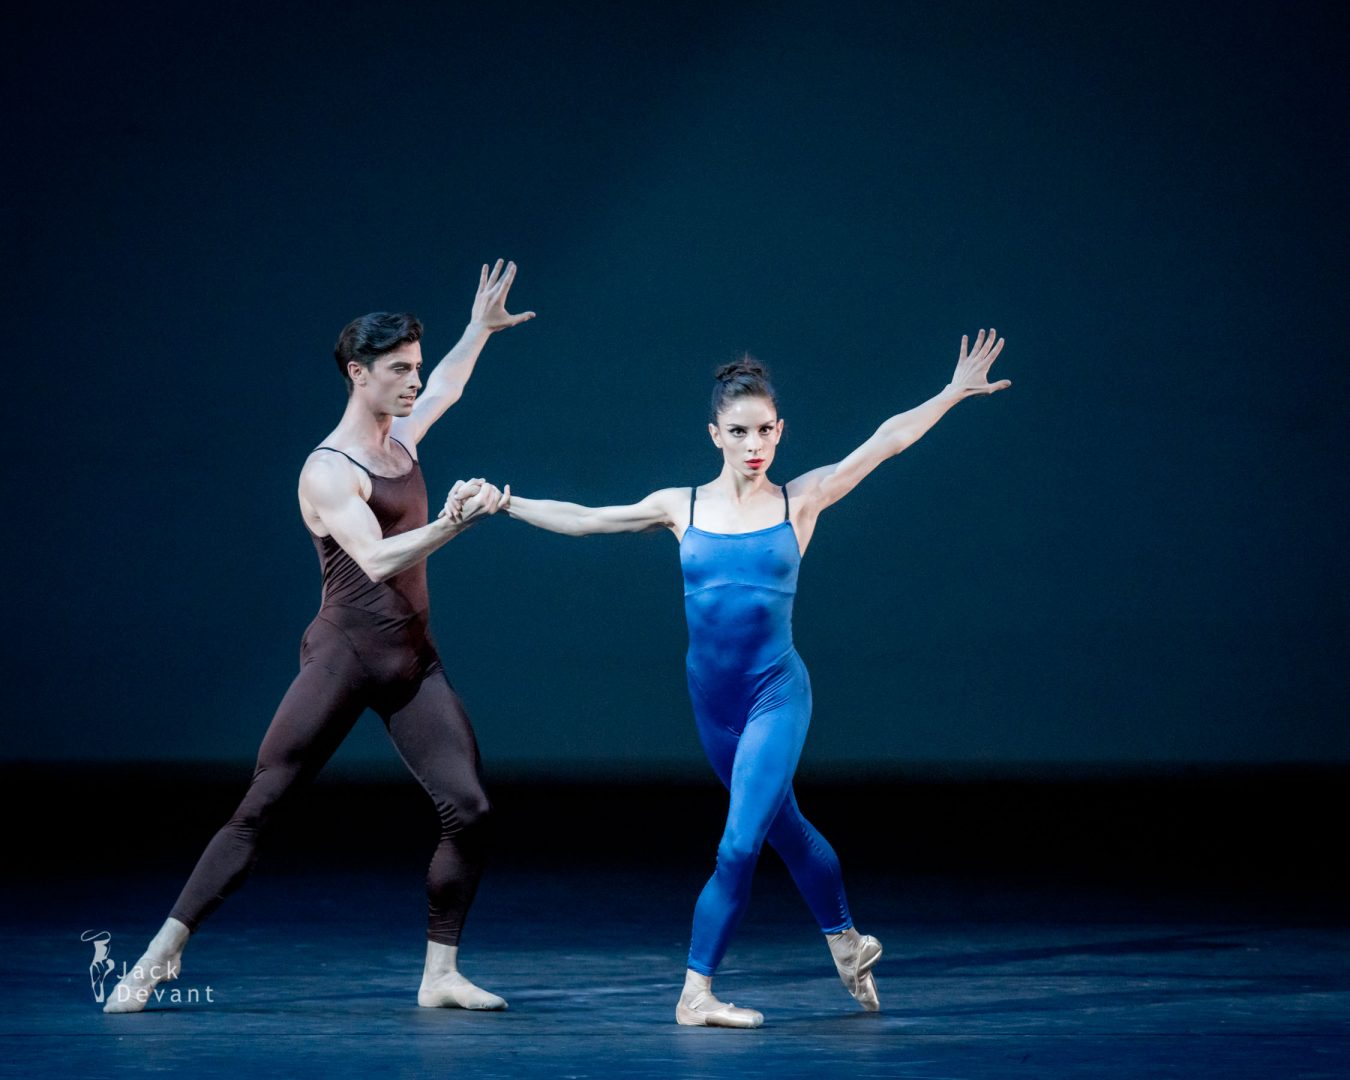 Dores Andre, Joseph Walsh in Variations for Two Couples 22